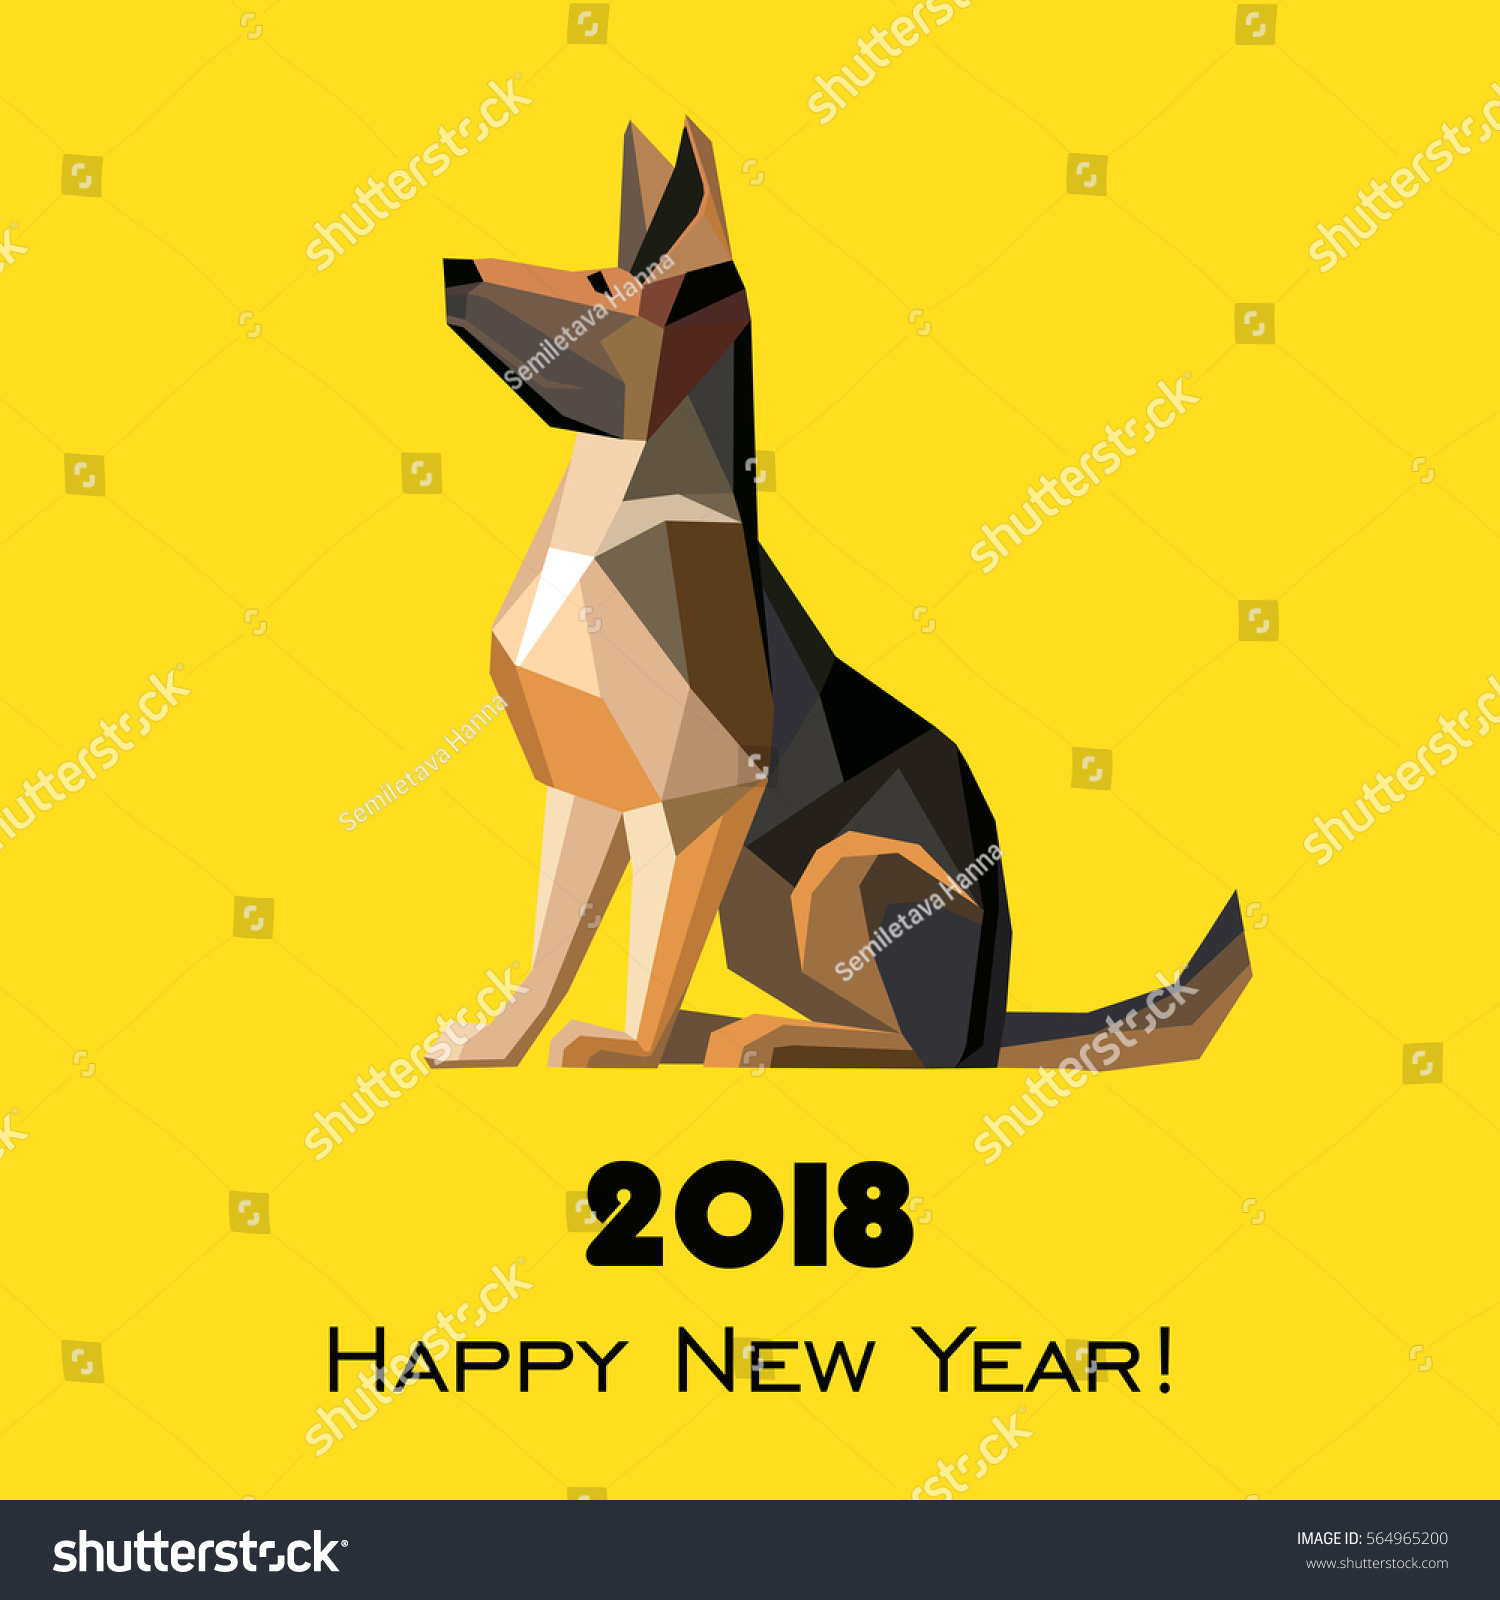 2018 happy new year greeting card stock illustration 564965200 2018 happy new year greeting card celebration yellow background with dog german shepherd and place m4hsunfo